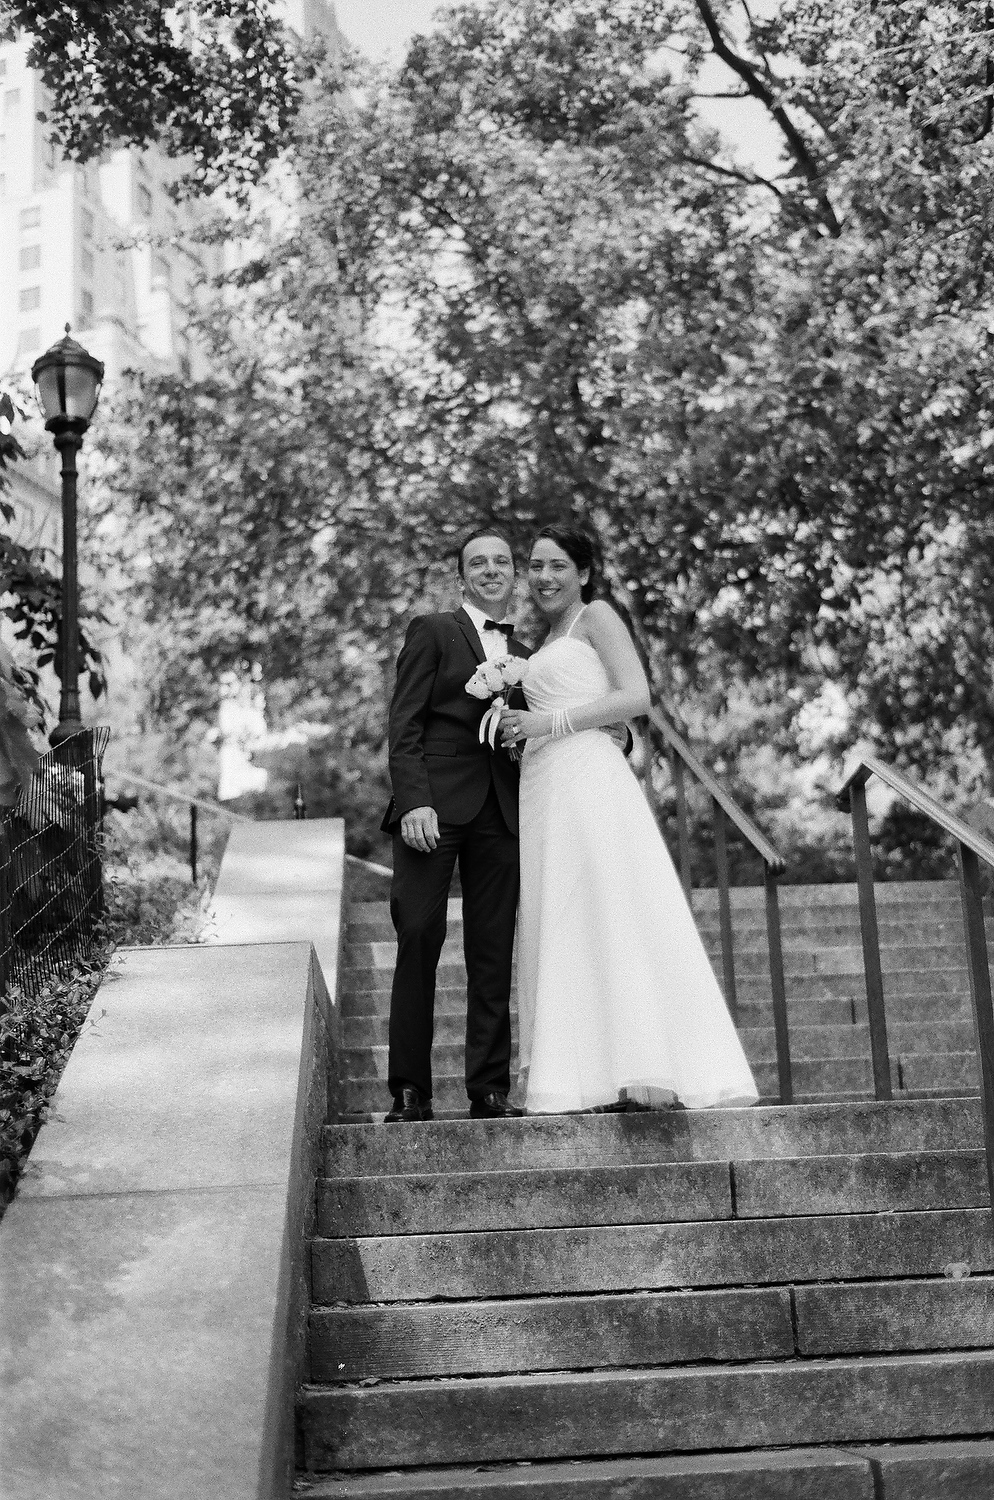 black and white film photograph of bride and groom in central park